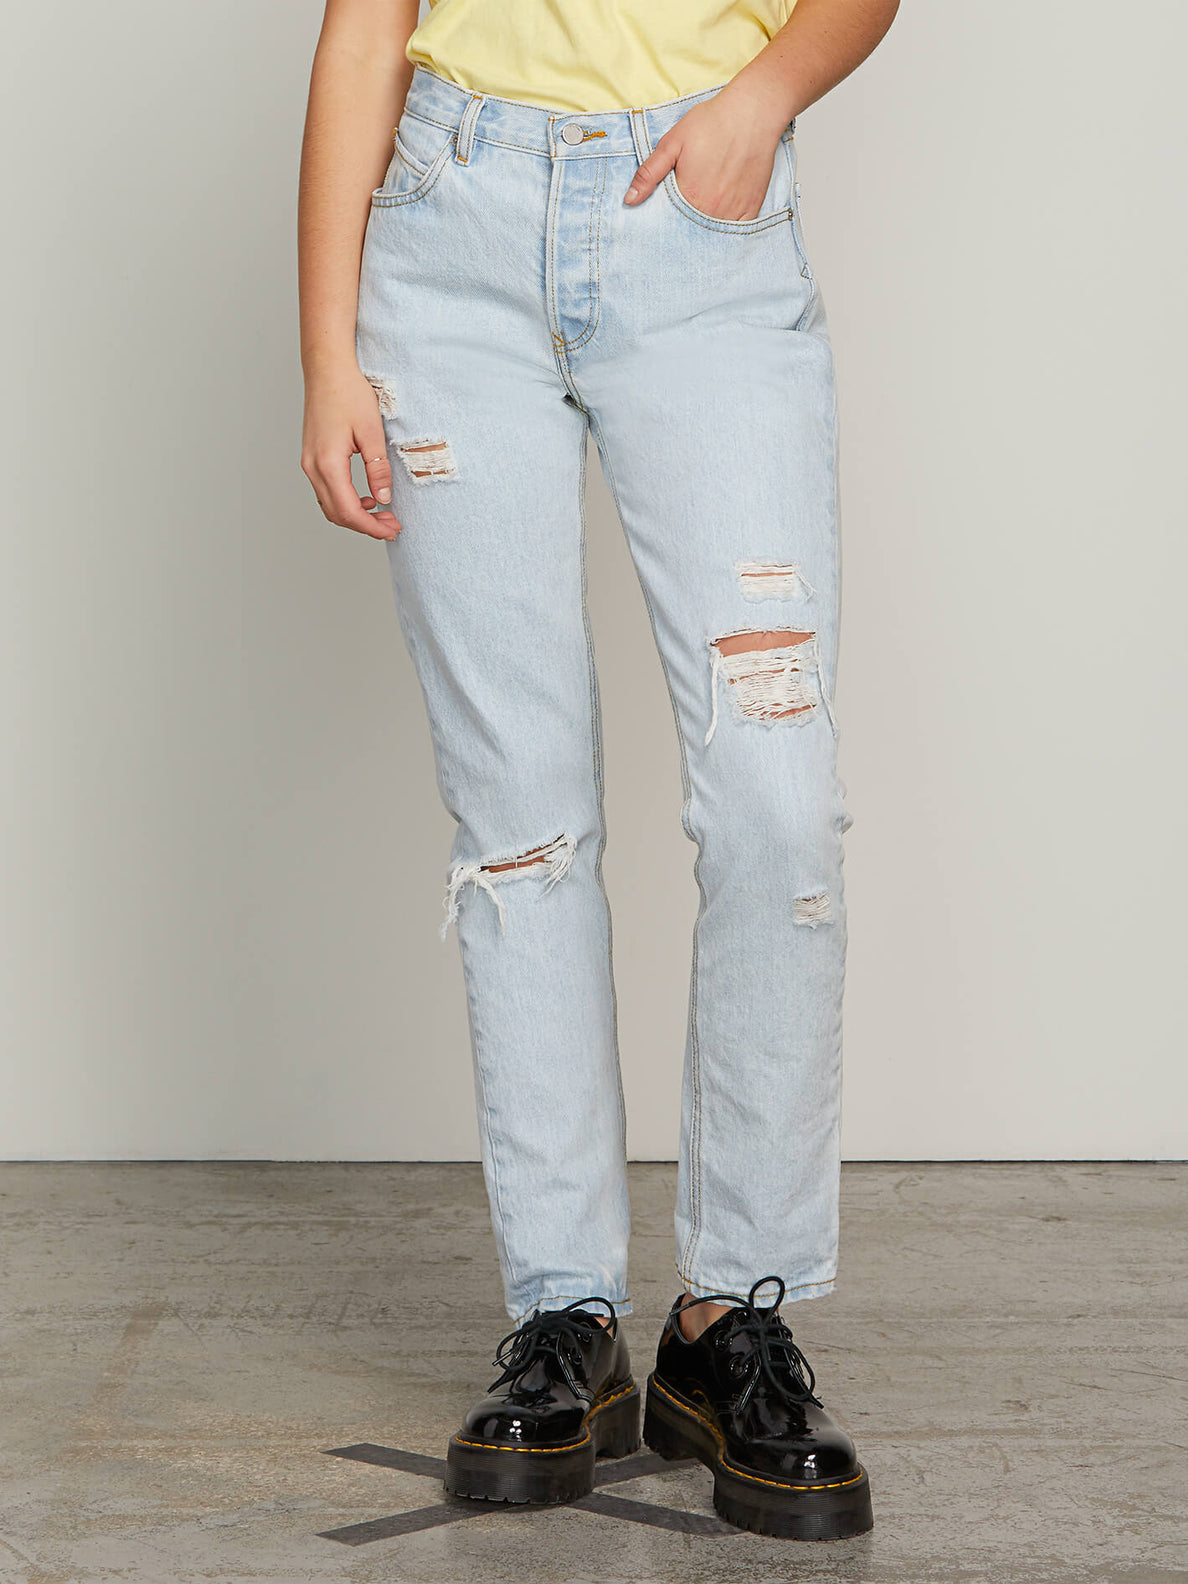 Super Stoned Skinny Jeans In Glacier Blue, Second Alternate View